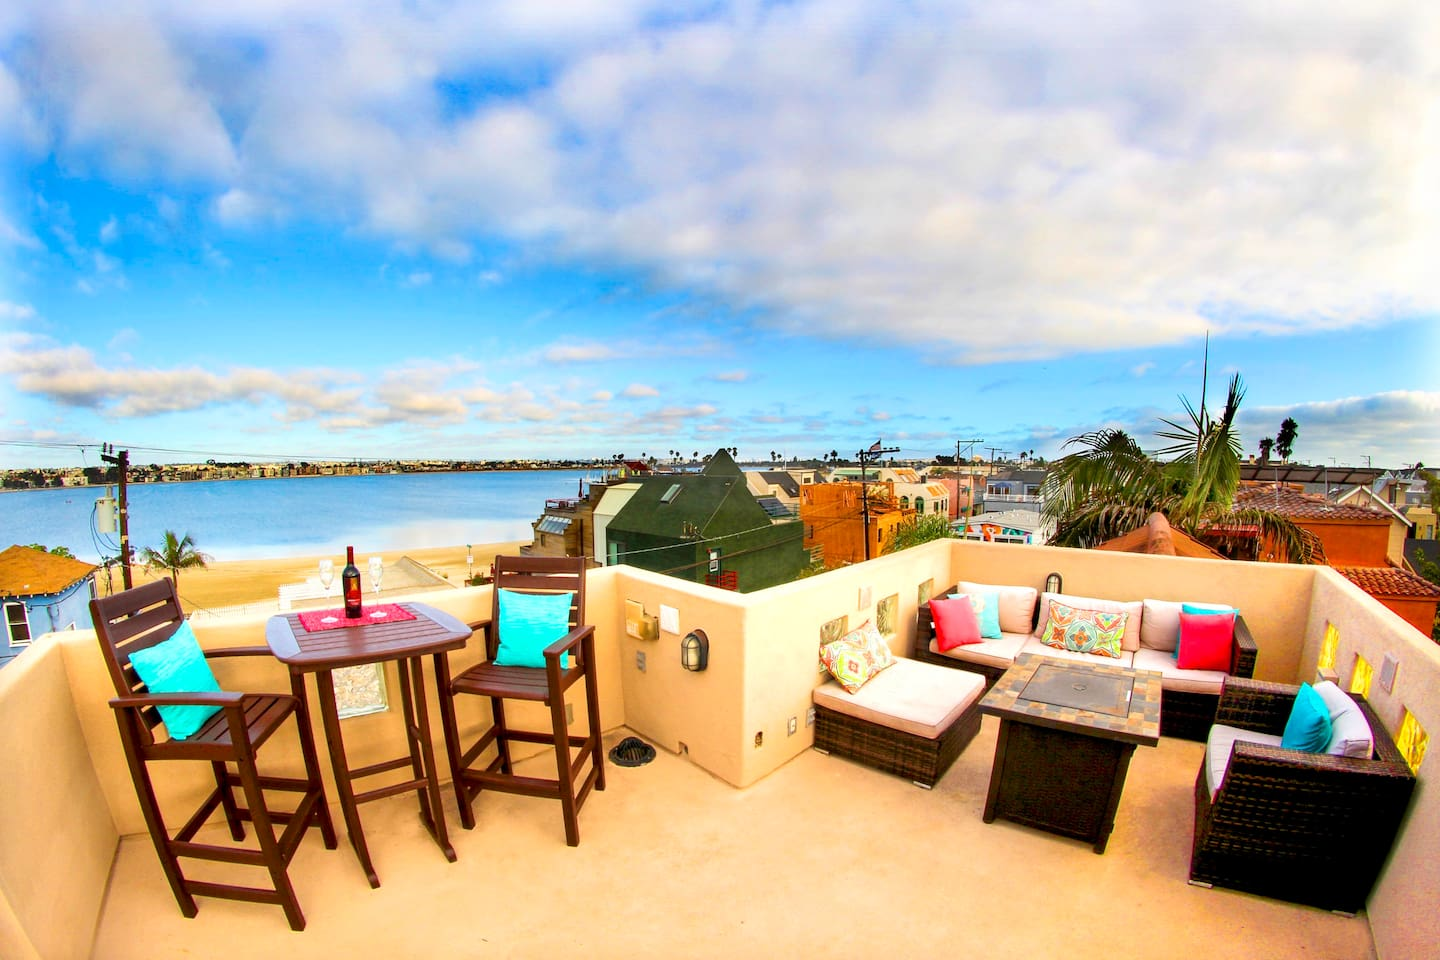 The rooftop deck is the perfect place to hang out with friends or family to enjoy the views of the bay and the ocean.  The deck features three separate spaces with plenty of seating for relaxing, dining and entertaining.